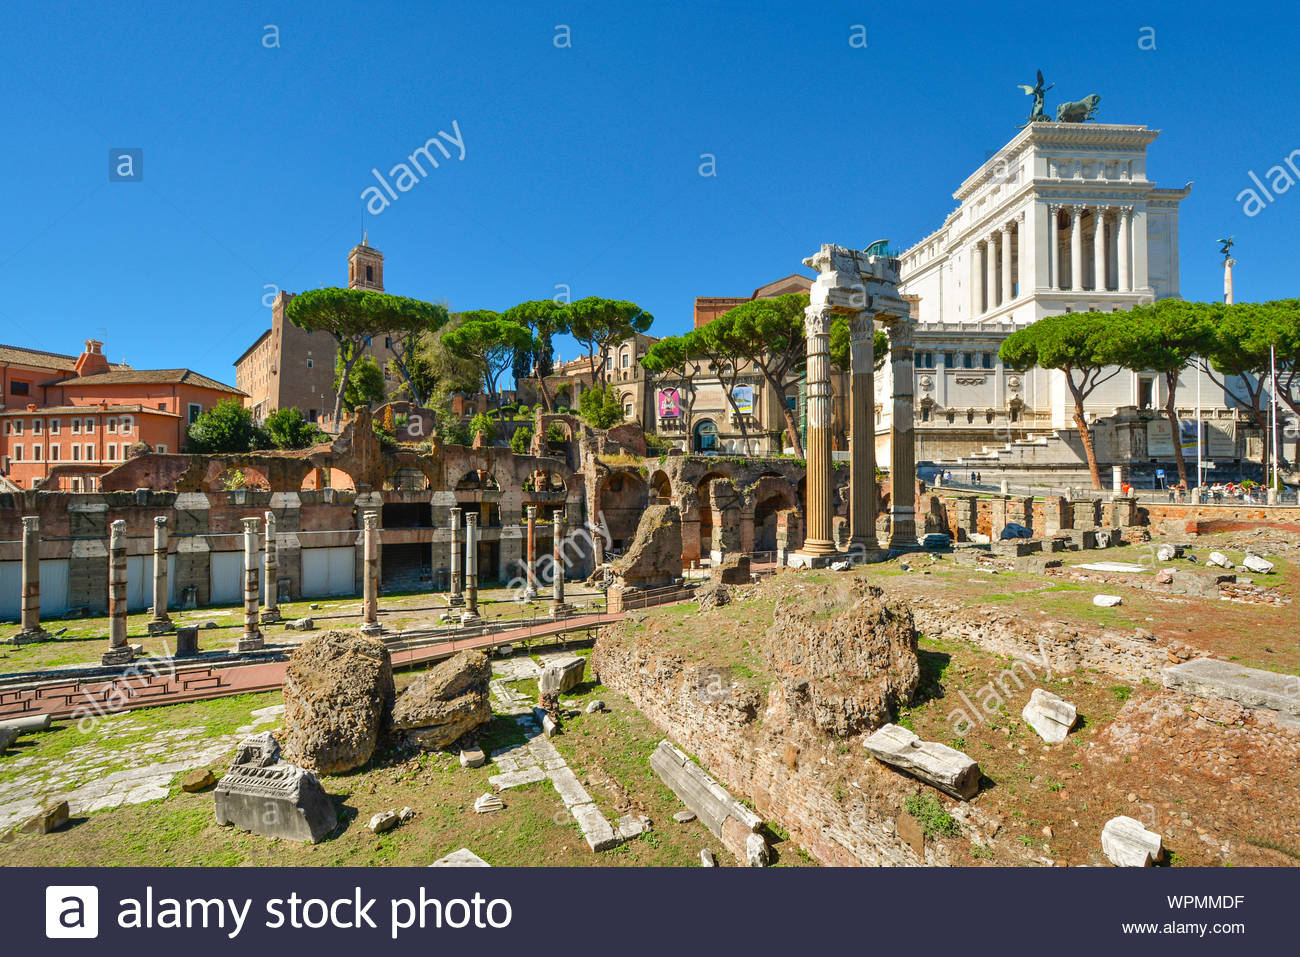 Ancient ruins near the Forum in Rome Italy with the Vittorio Emanuele Monument in the background on a sunny summer day Stock Photo